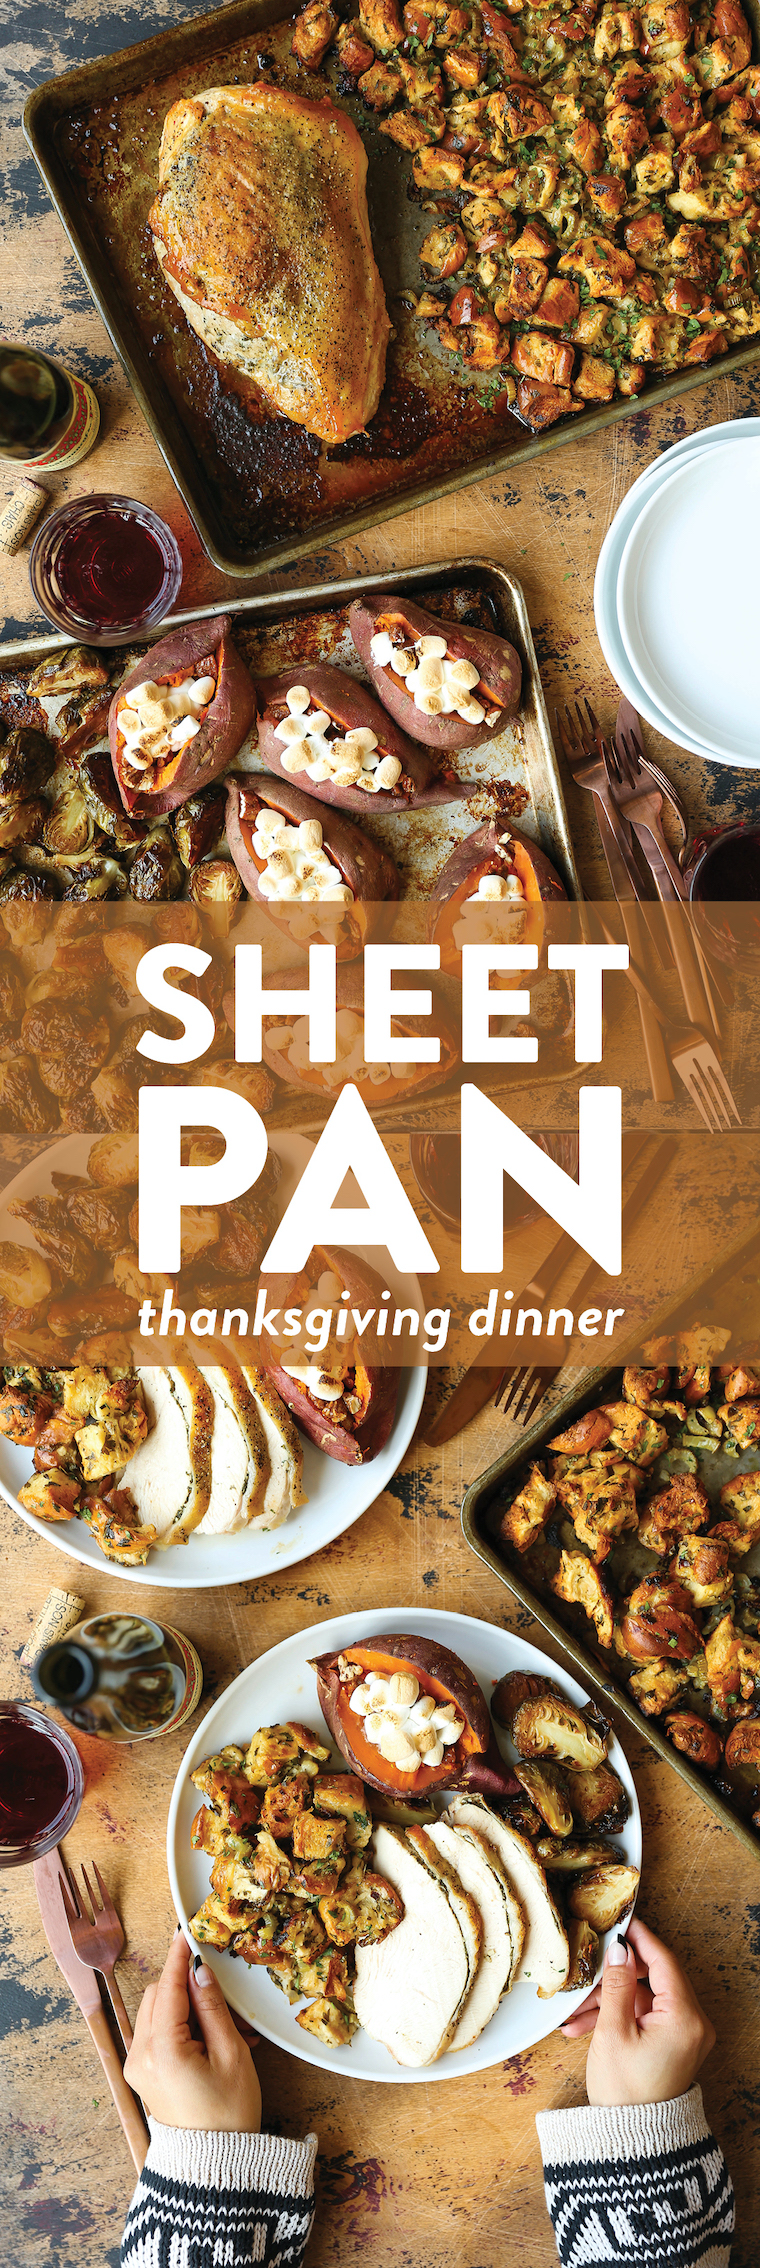 Sheet Pan Thanksgiving Dinner - Turkey, stuffing, brussels sprouts + sweet potatoes in less than 2 hrs on just TWO SHEET PANS! So quick with easy clean up!